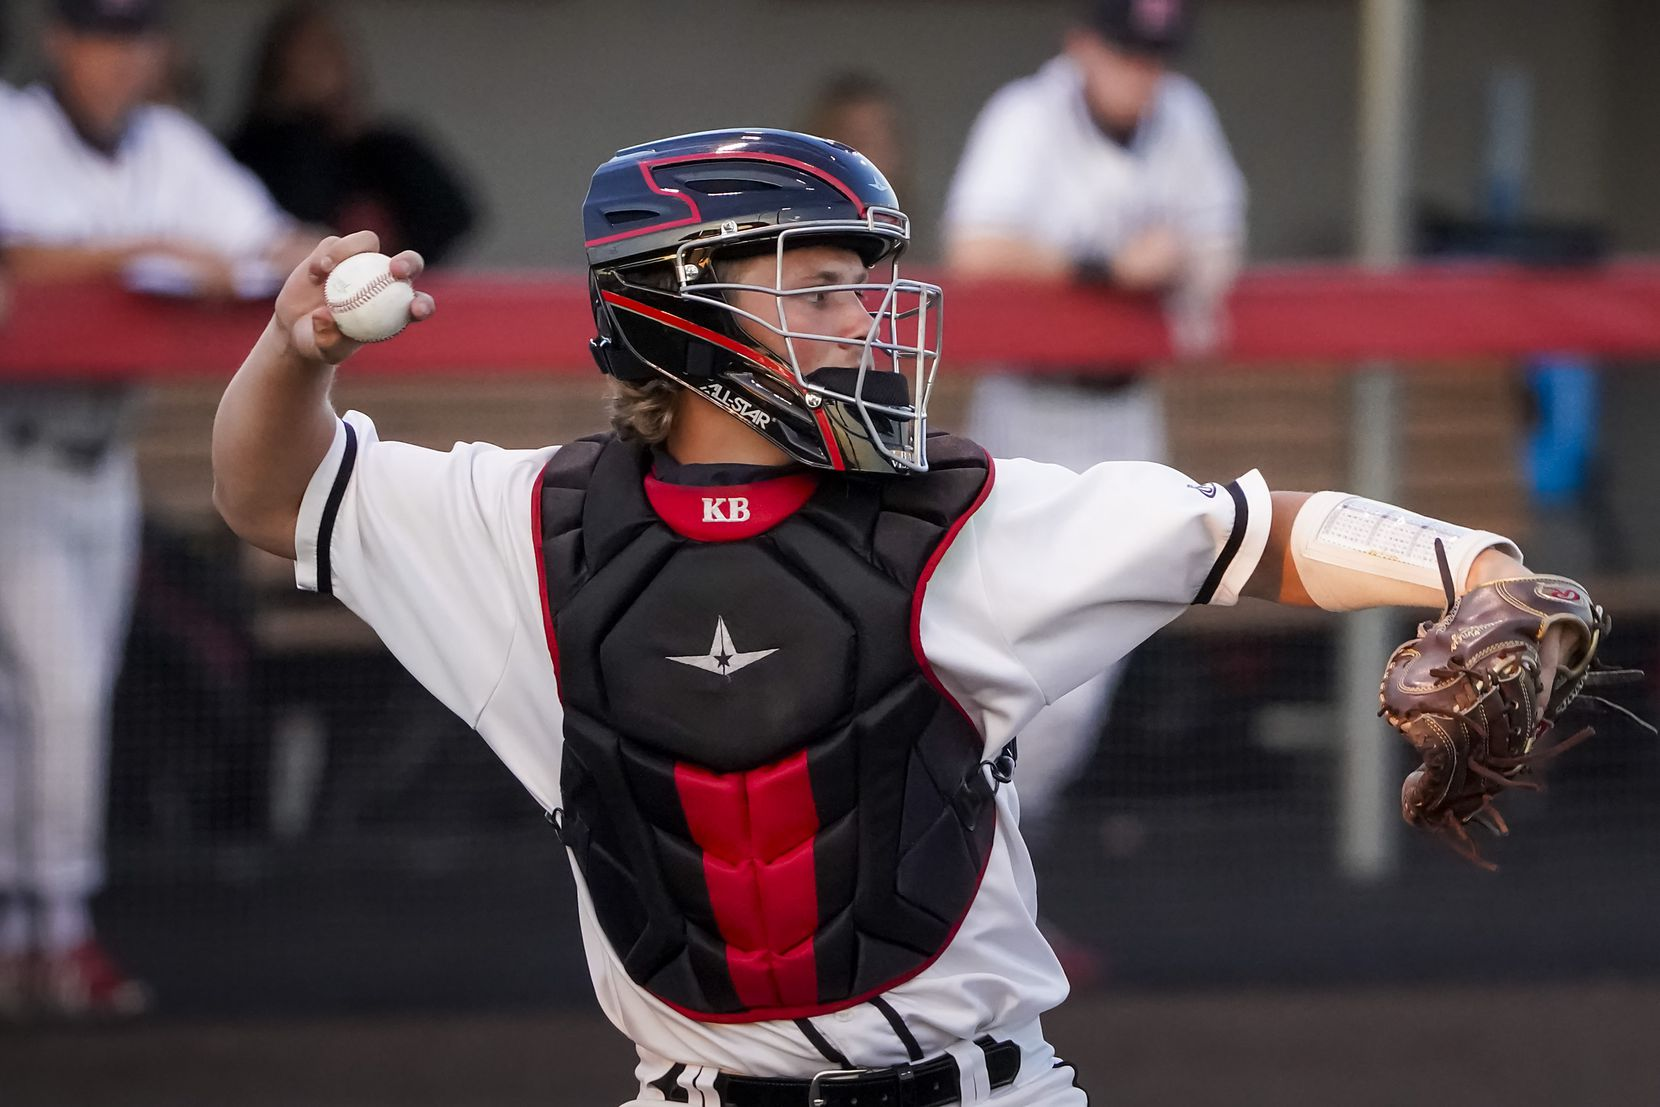 Rockwall-Heath catcher Kevin Bazzell makes a throw to second base during a district 10-6A high school baseball game against North Mesquite on Thursday, April 1, 2021, in Rockwall. (Smiley N. Pool/The Dallas Morning News)